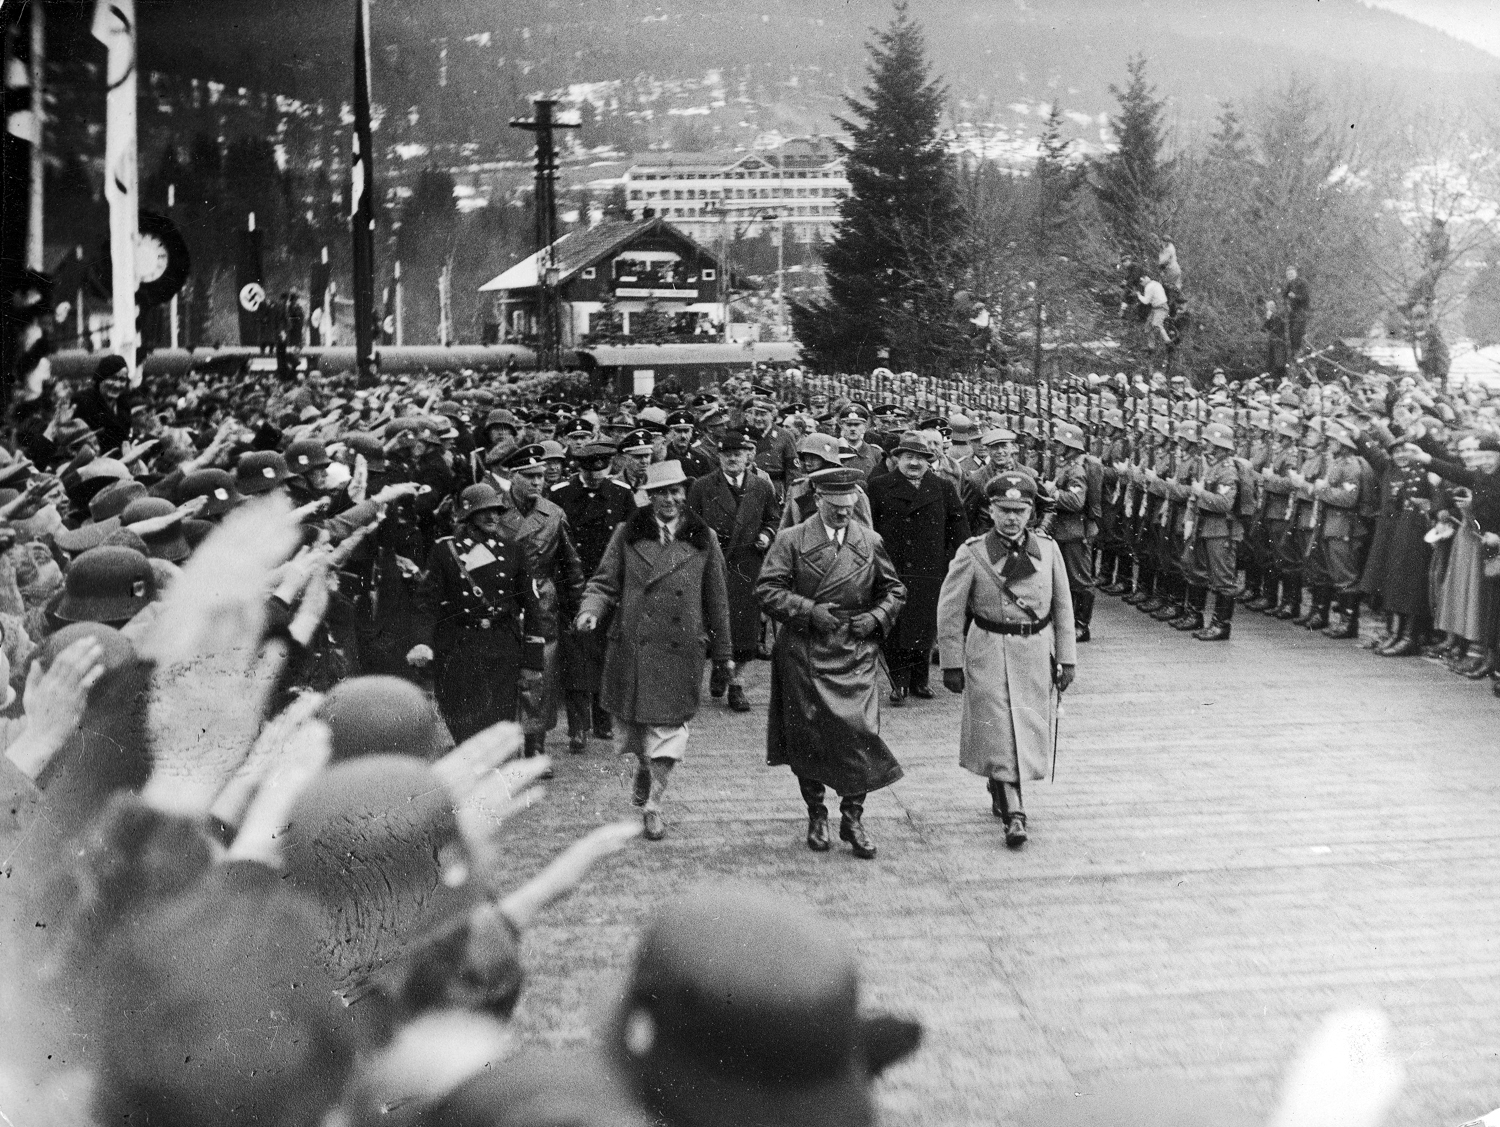 Adolf Hitler arrives for the closing ceremony of the Winter Olympic games in Garmisch-Partenkirchen